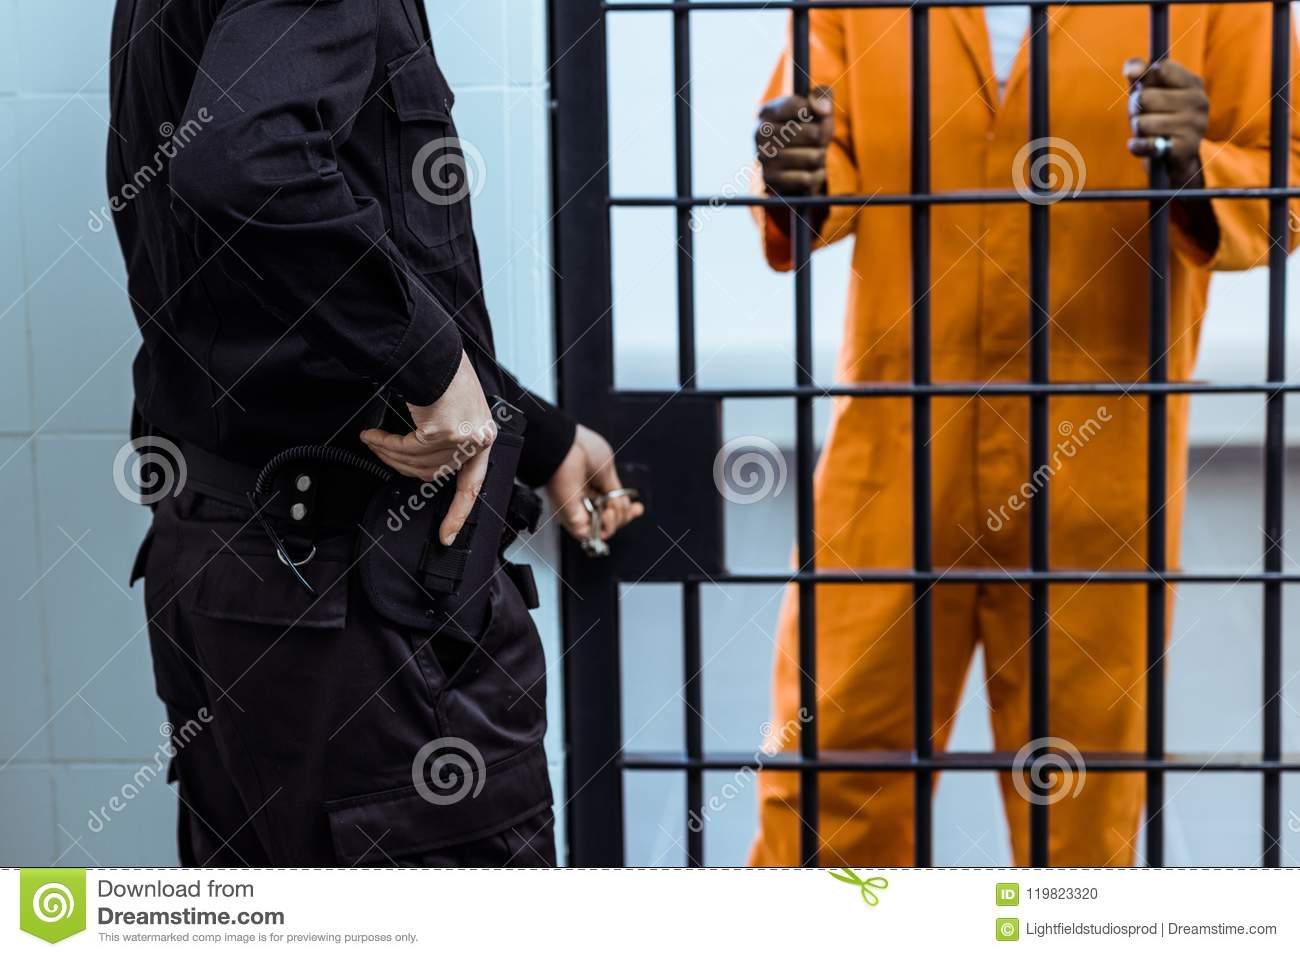 cropped image of prison guard putting hand on gun